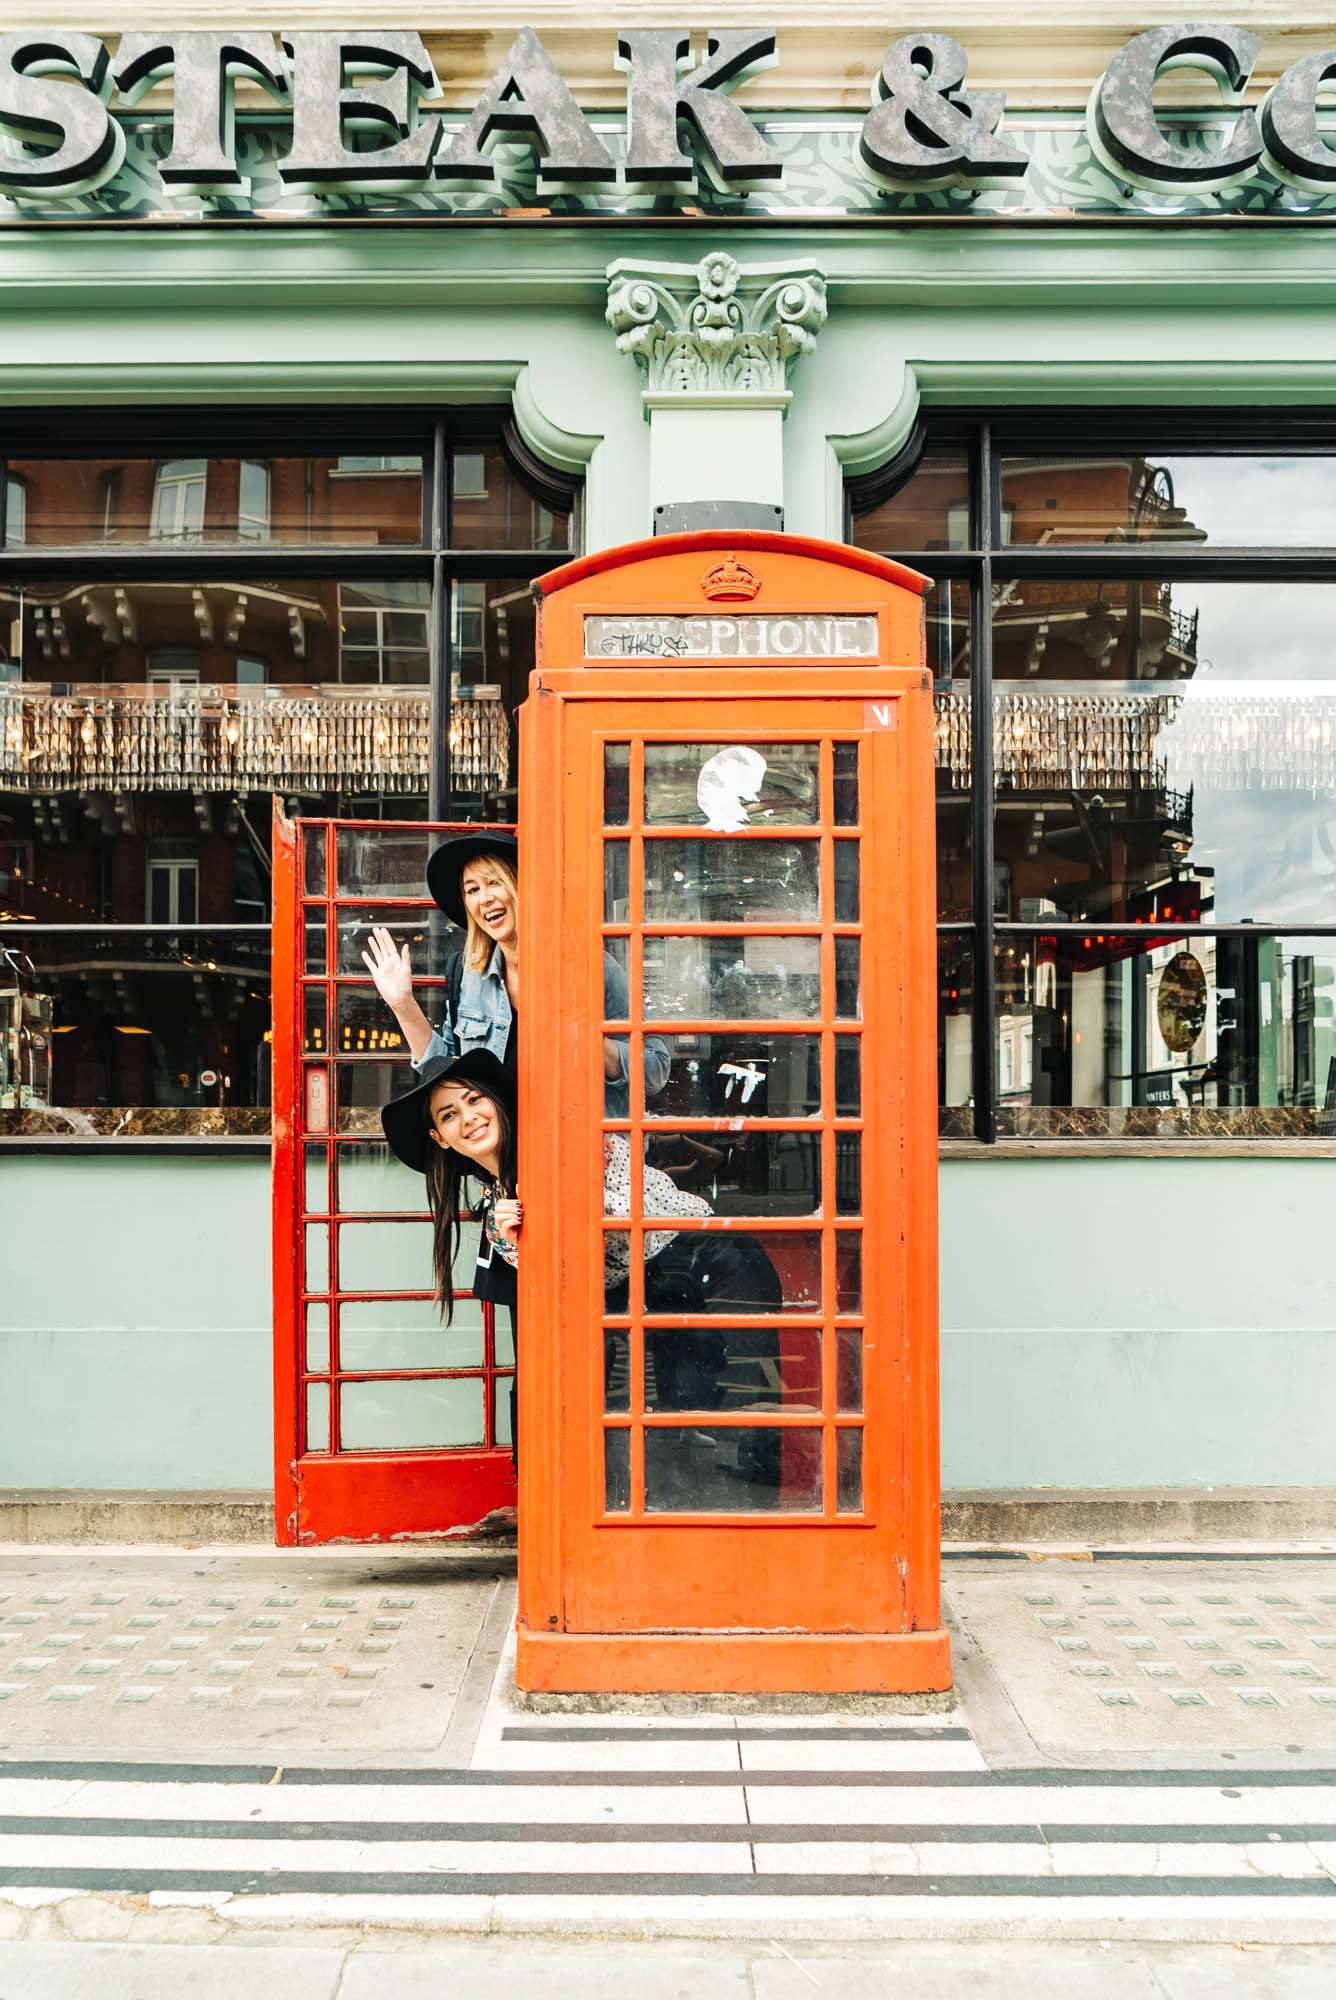 We just can't resist taking photos in these London booths